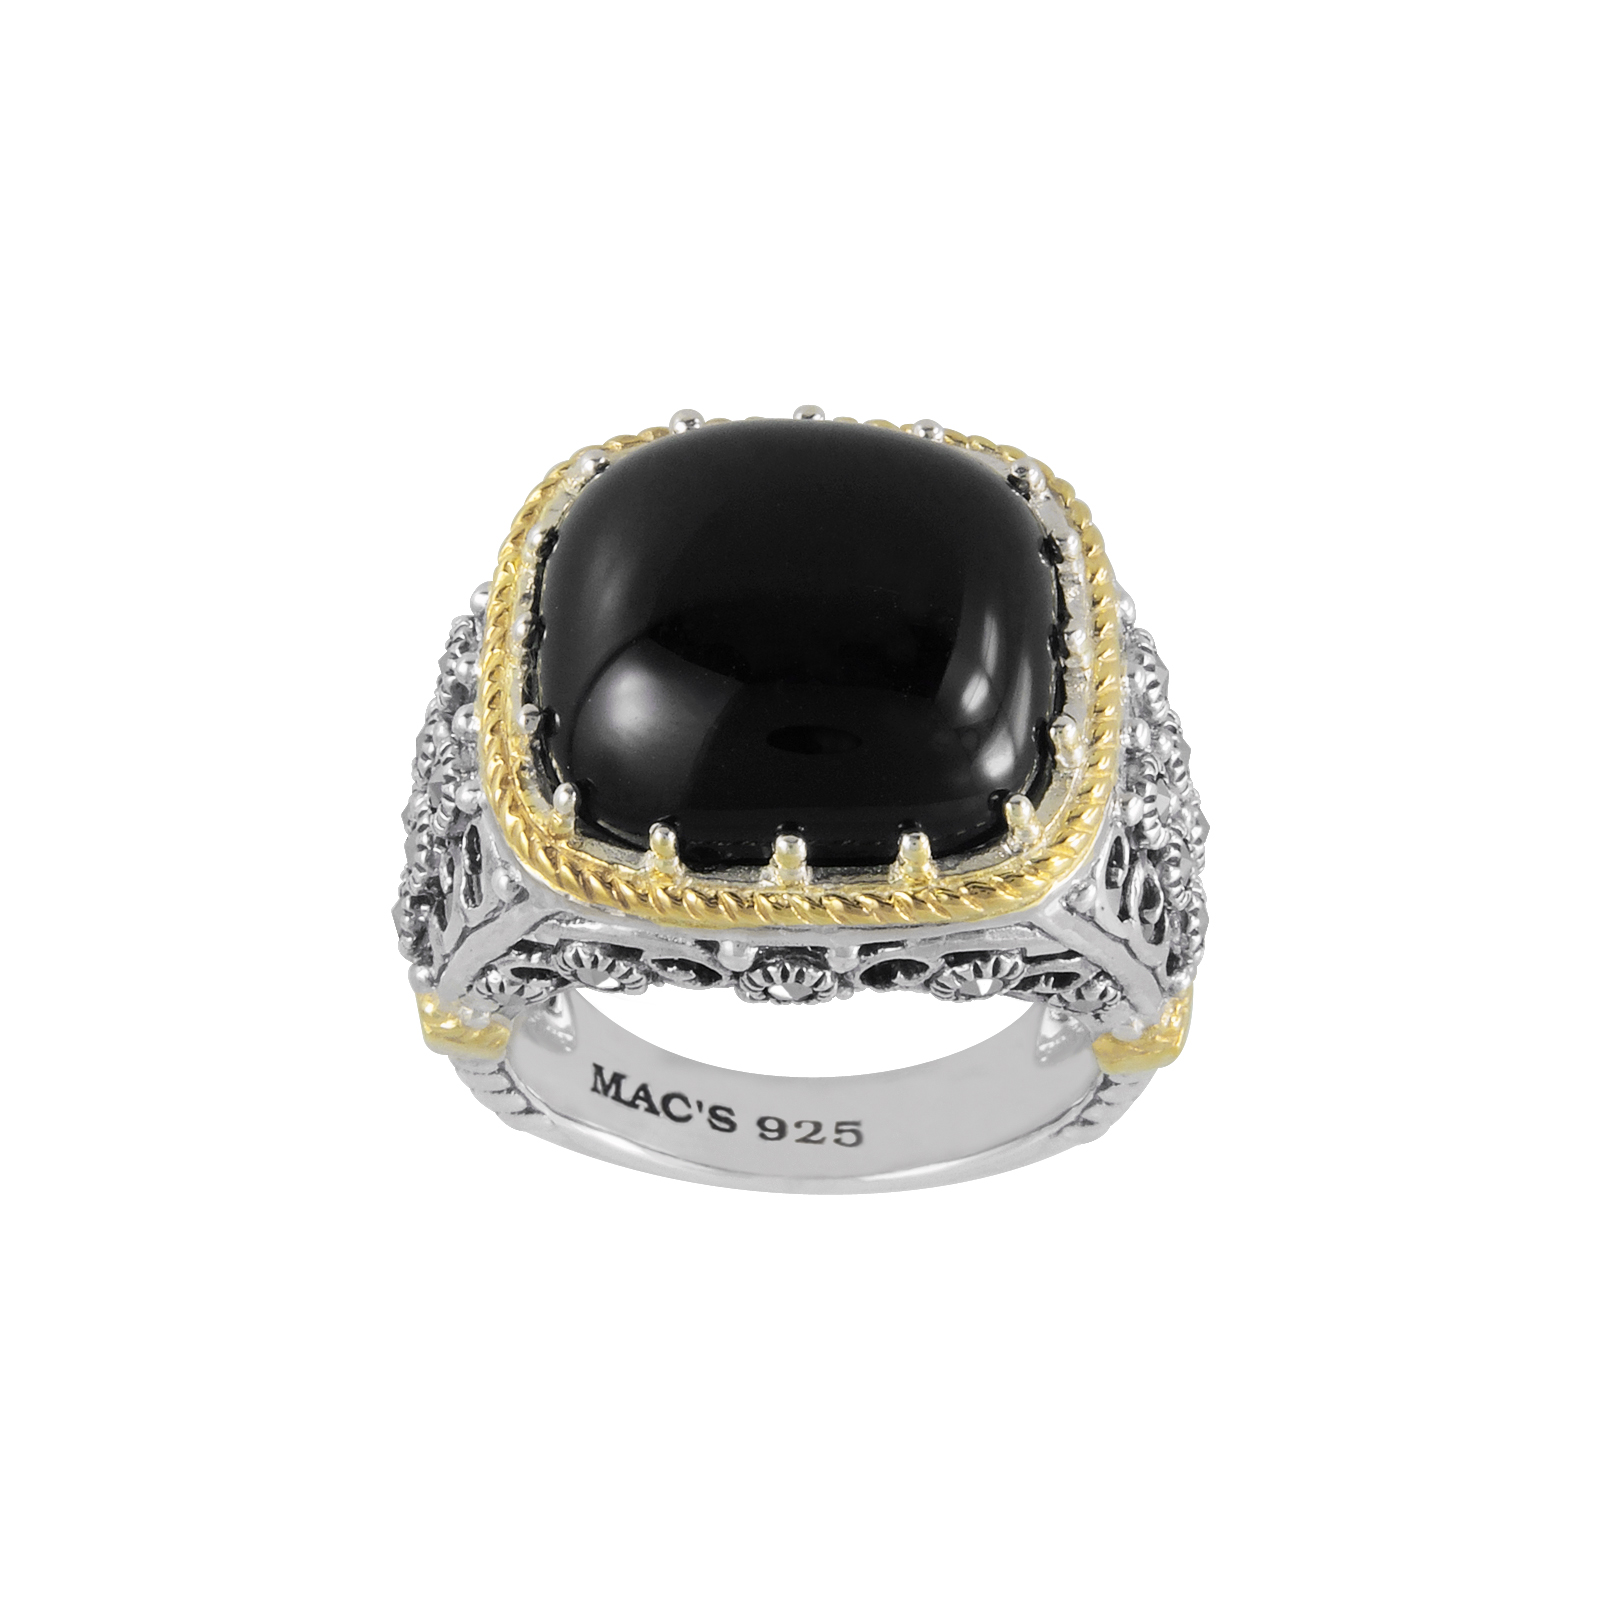 Mac's Cabochon Square Cut Black Onxy & Marcasite accented with 14K Yellow Gold Trim Ring